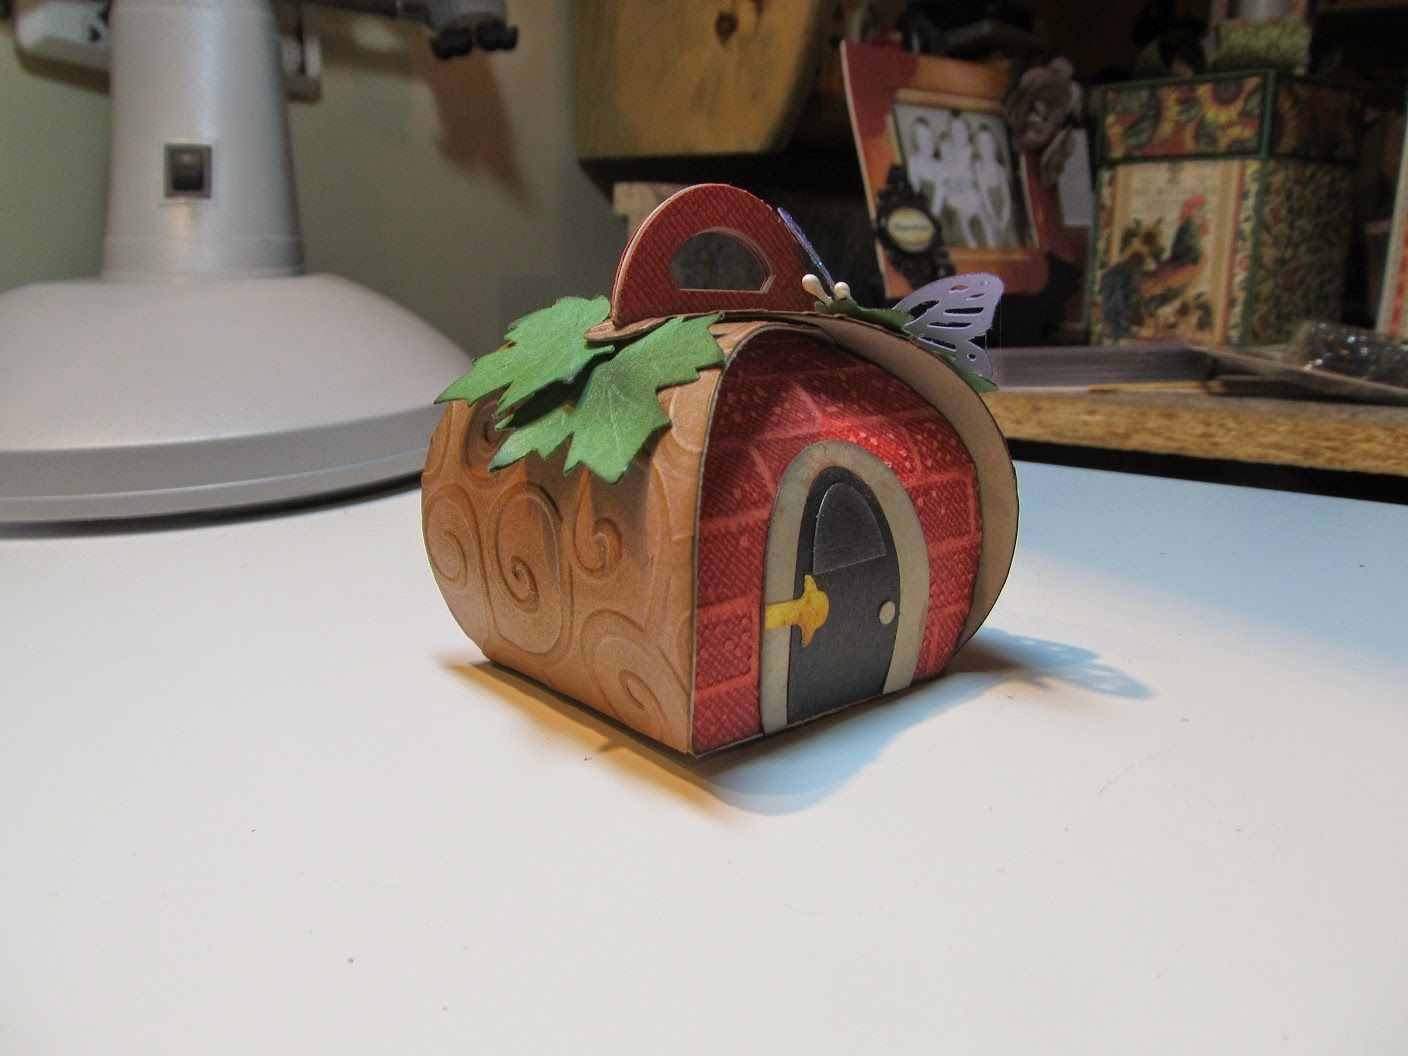 Fairy Garden House! (Calla Lily Studio Blog) is part of Big garden House - I have been playing with some of my new stuff from my order from Stampin Up! I love the Curvy Keepsake die! I have seen sooo many cute ideas from Pinterest  But it always reminded me of a Fairy Ho